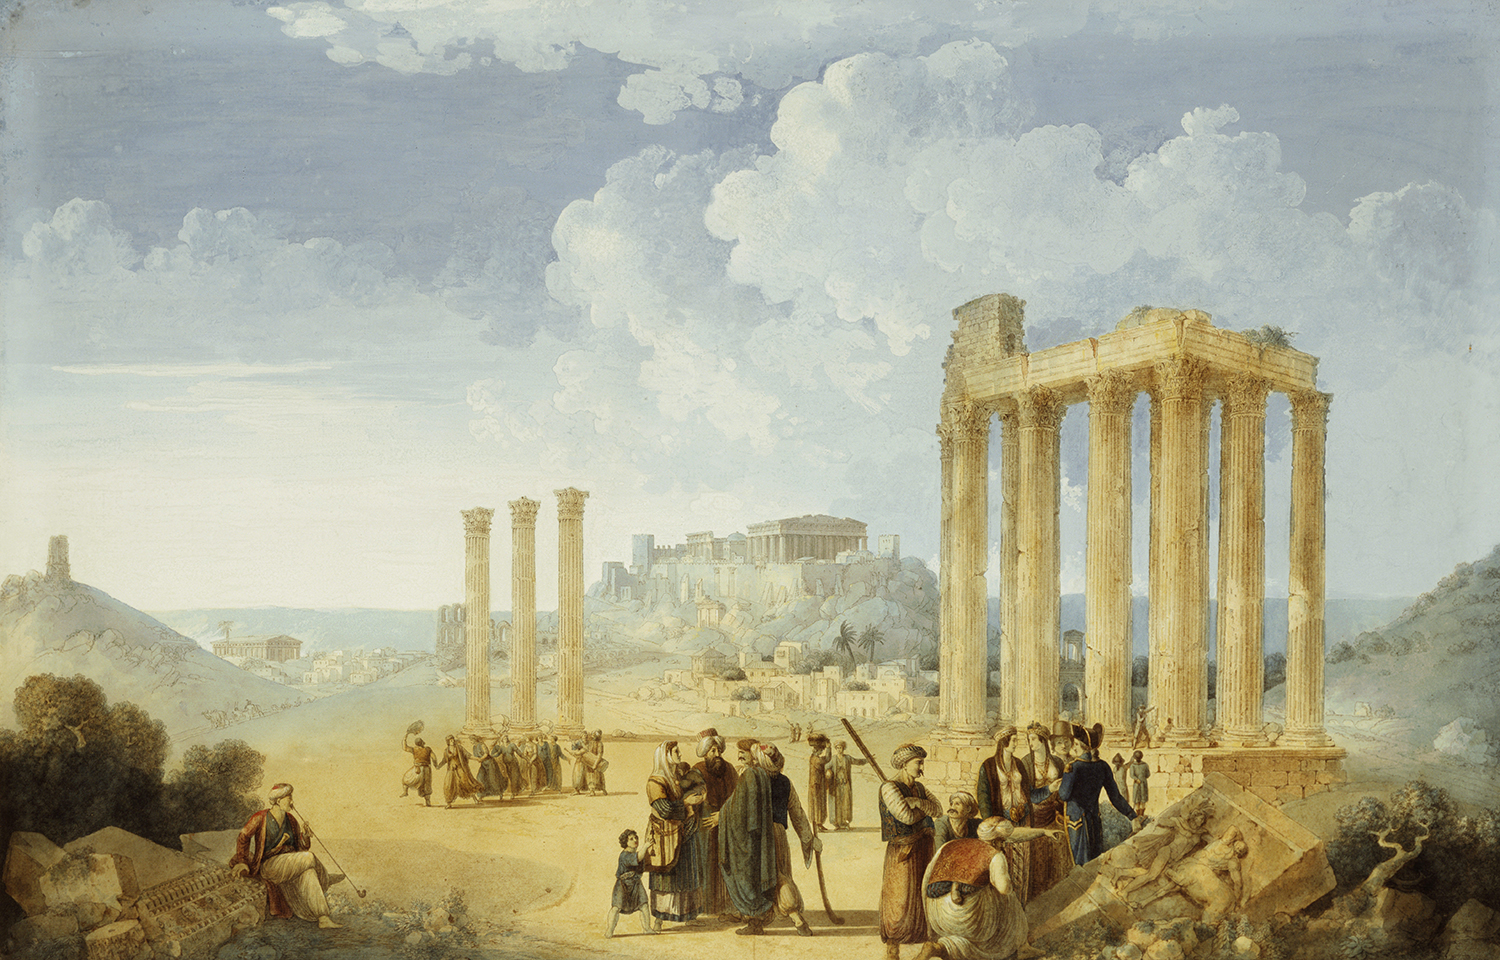 Temple of Olympian Zeus, Athens with the Acropolis in the distance, Louis-Francois Cassas, c.1800.